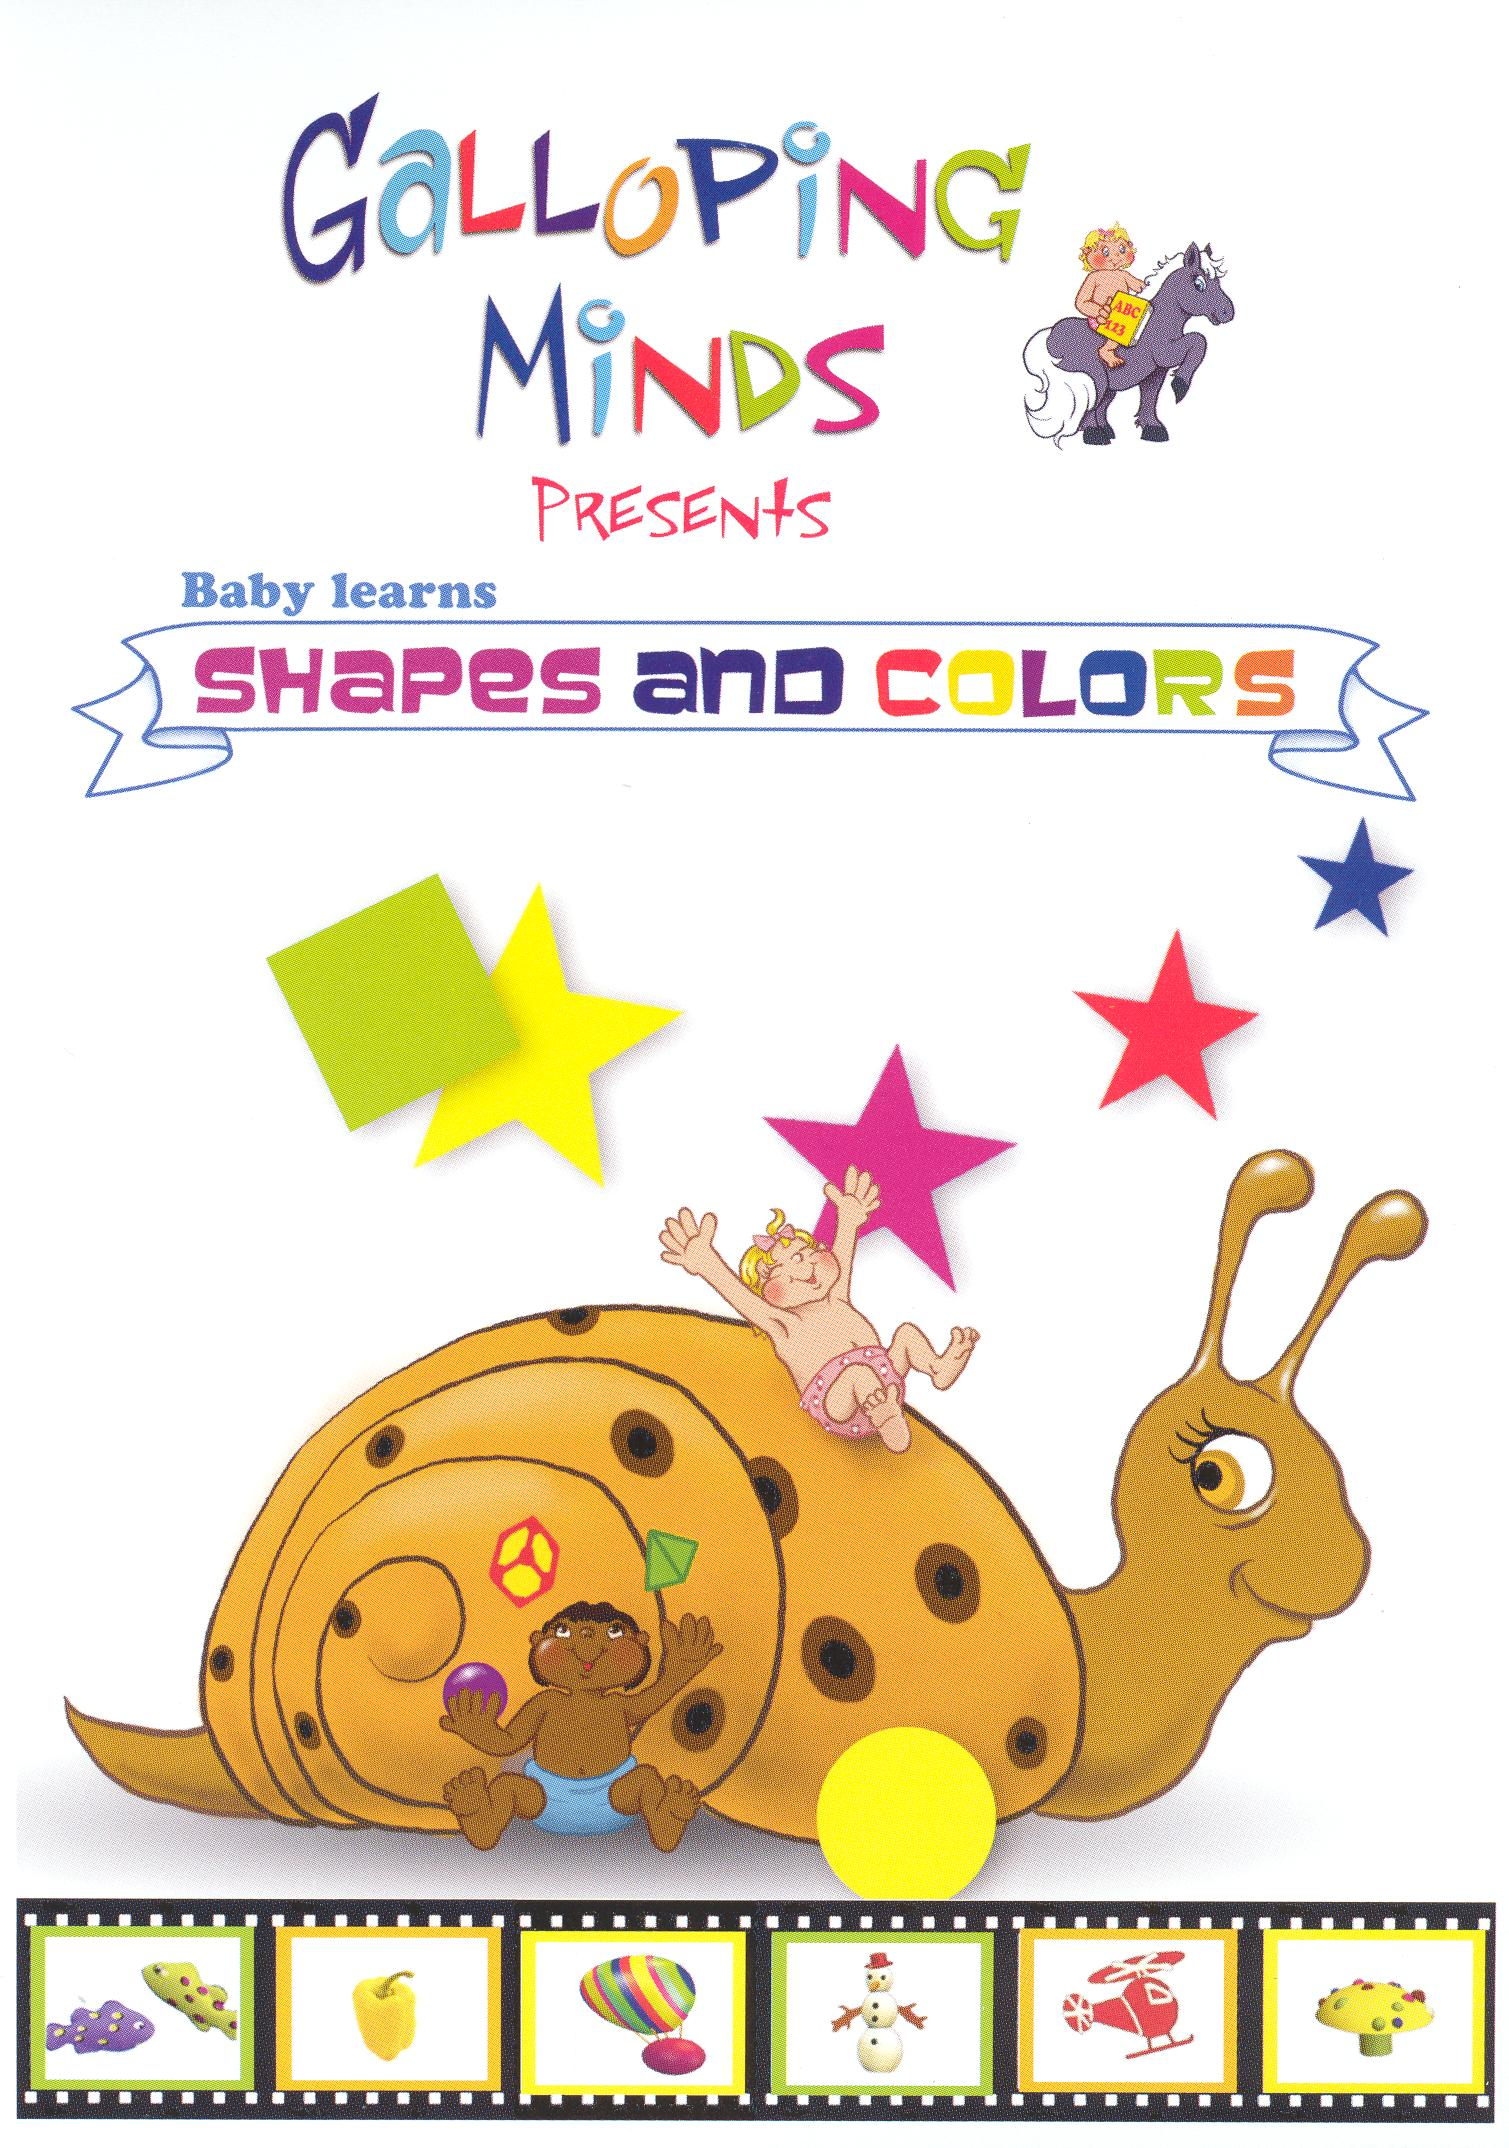 Galloping Minds, Vol. 2: Shapes and Colors